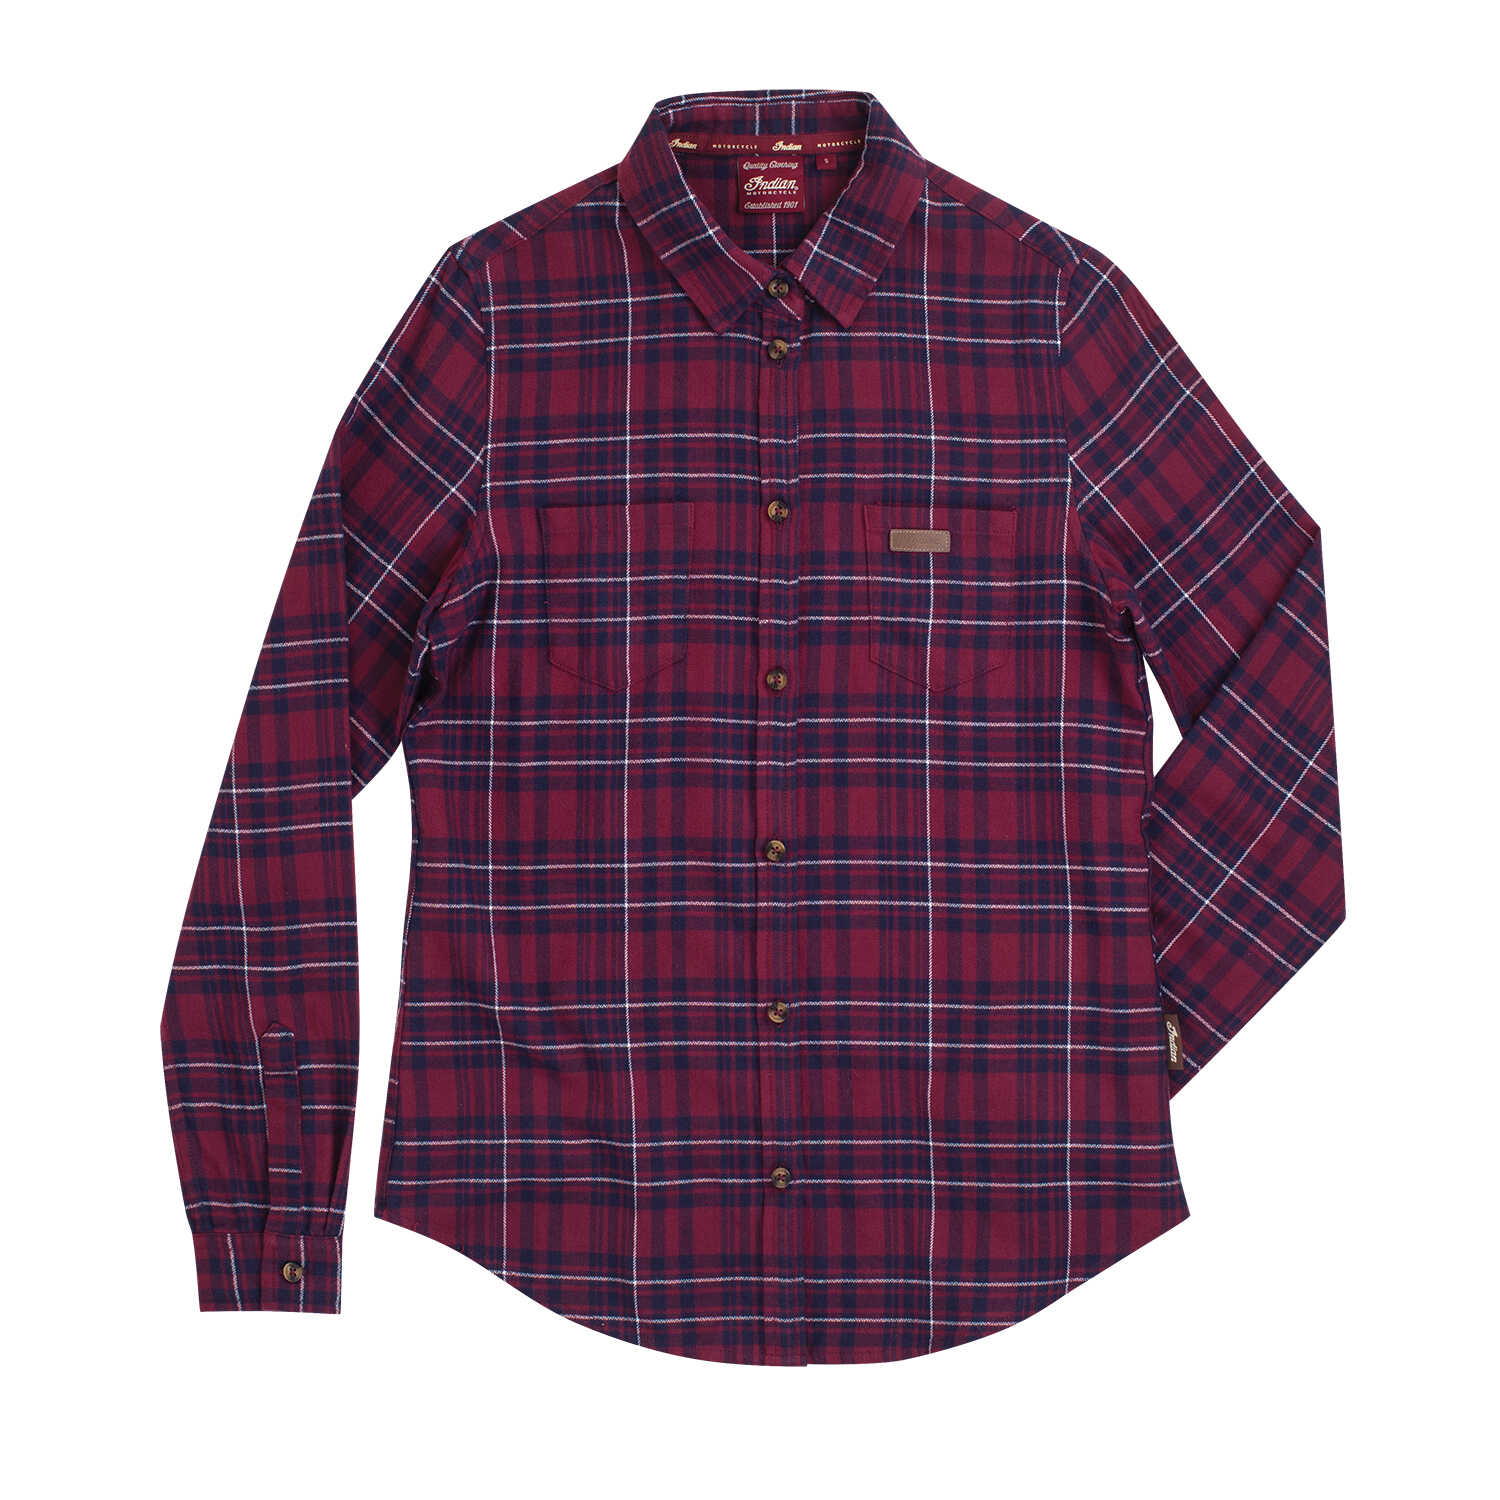 Women's Plaid Shirt with Embroidered Logo, Red/Navy